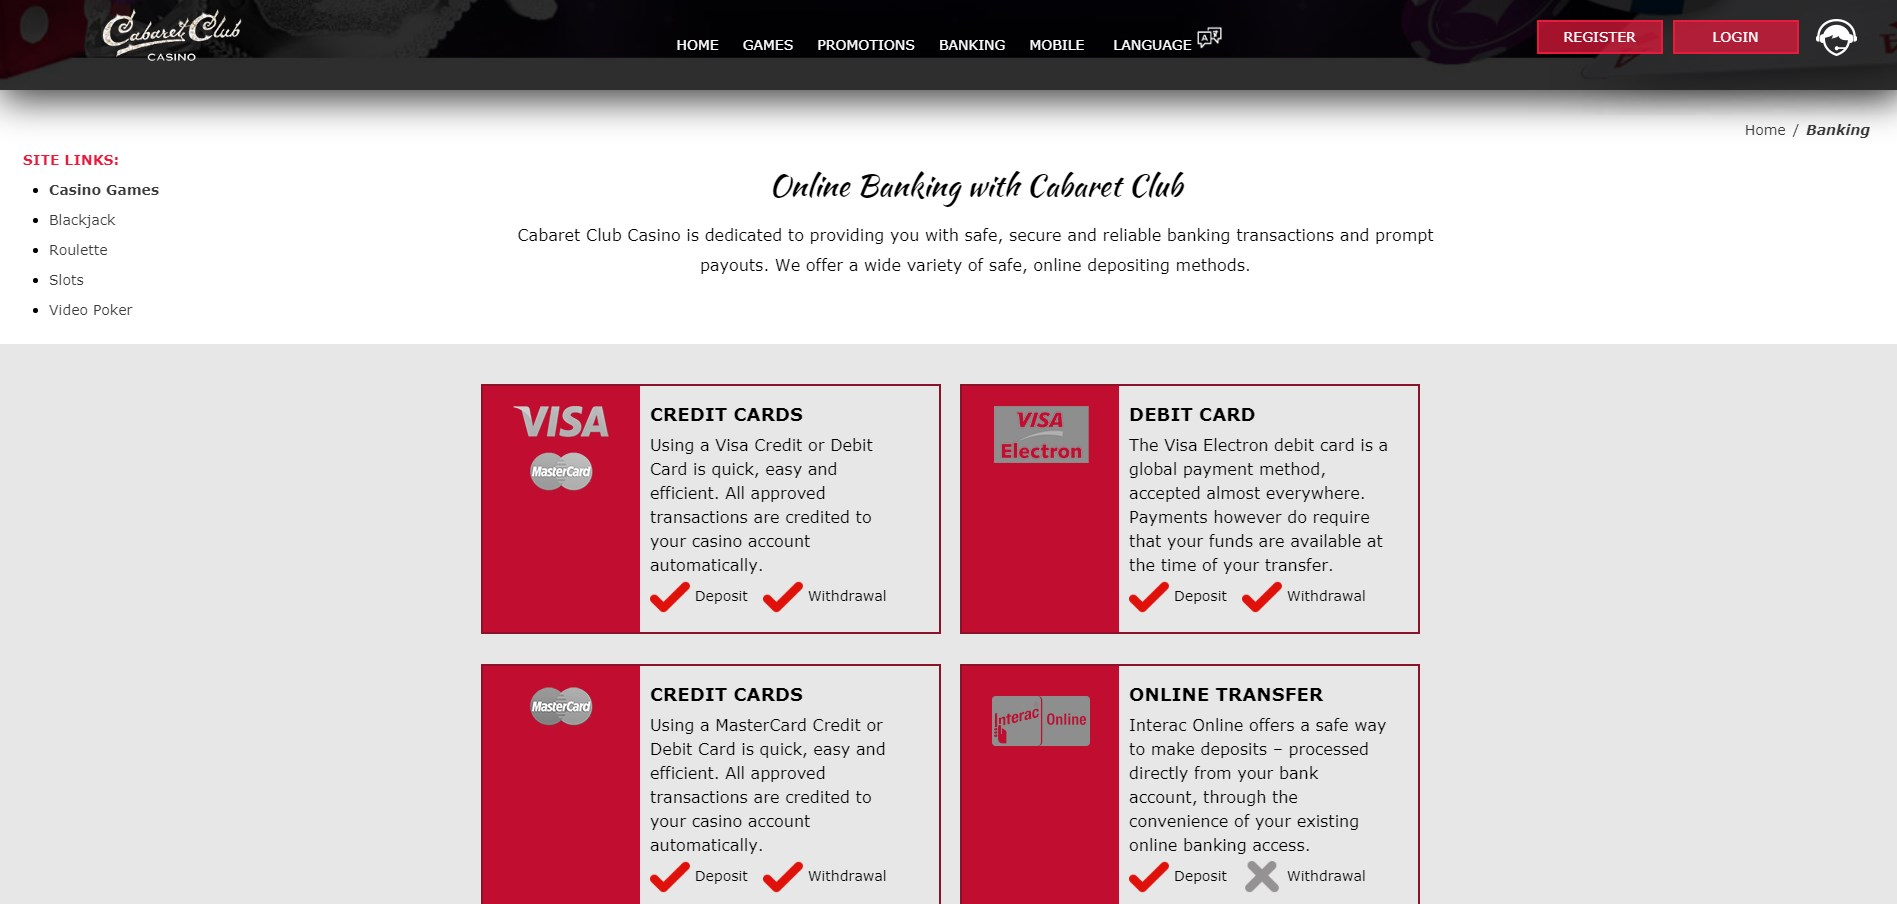 Cabaret Club Casino Payment Methods